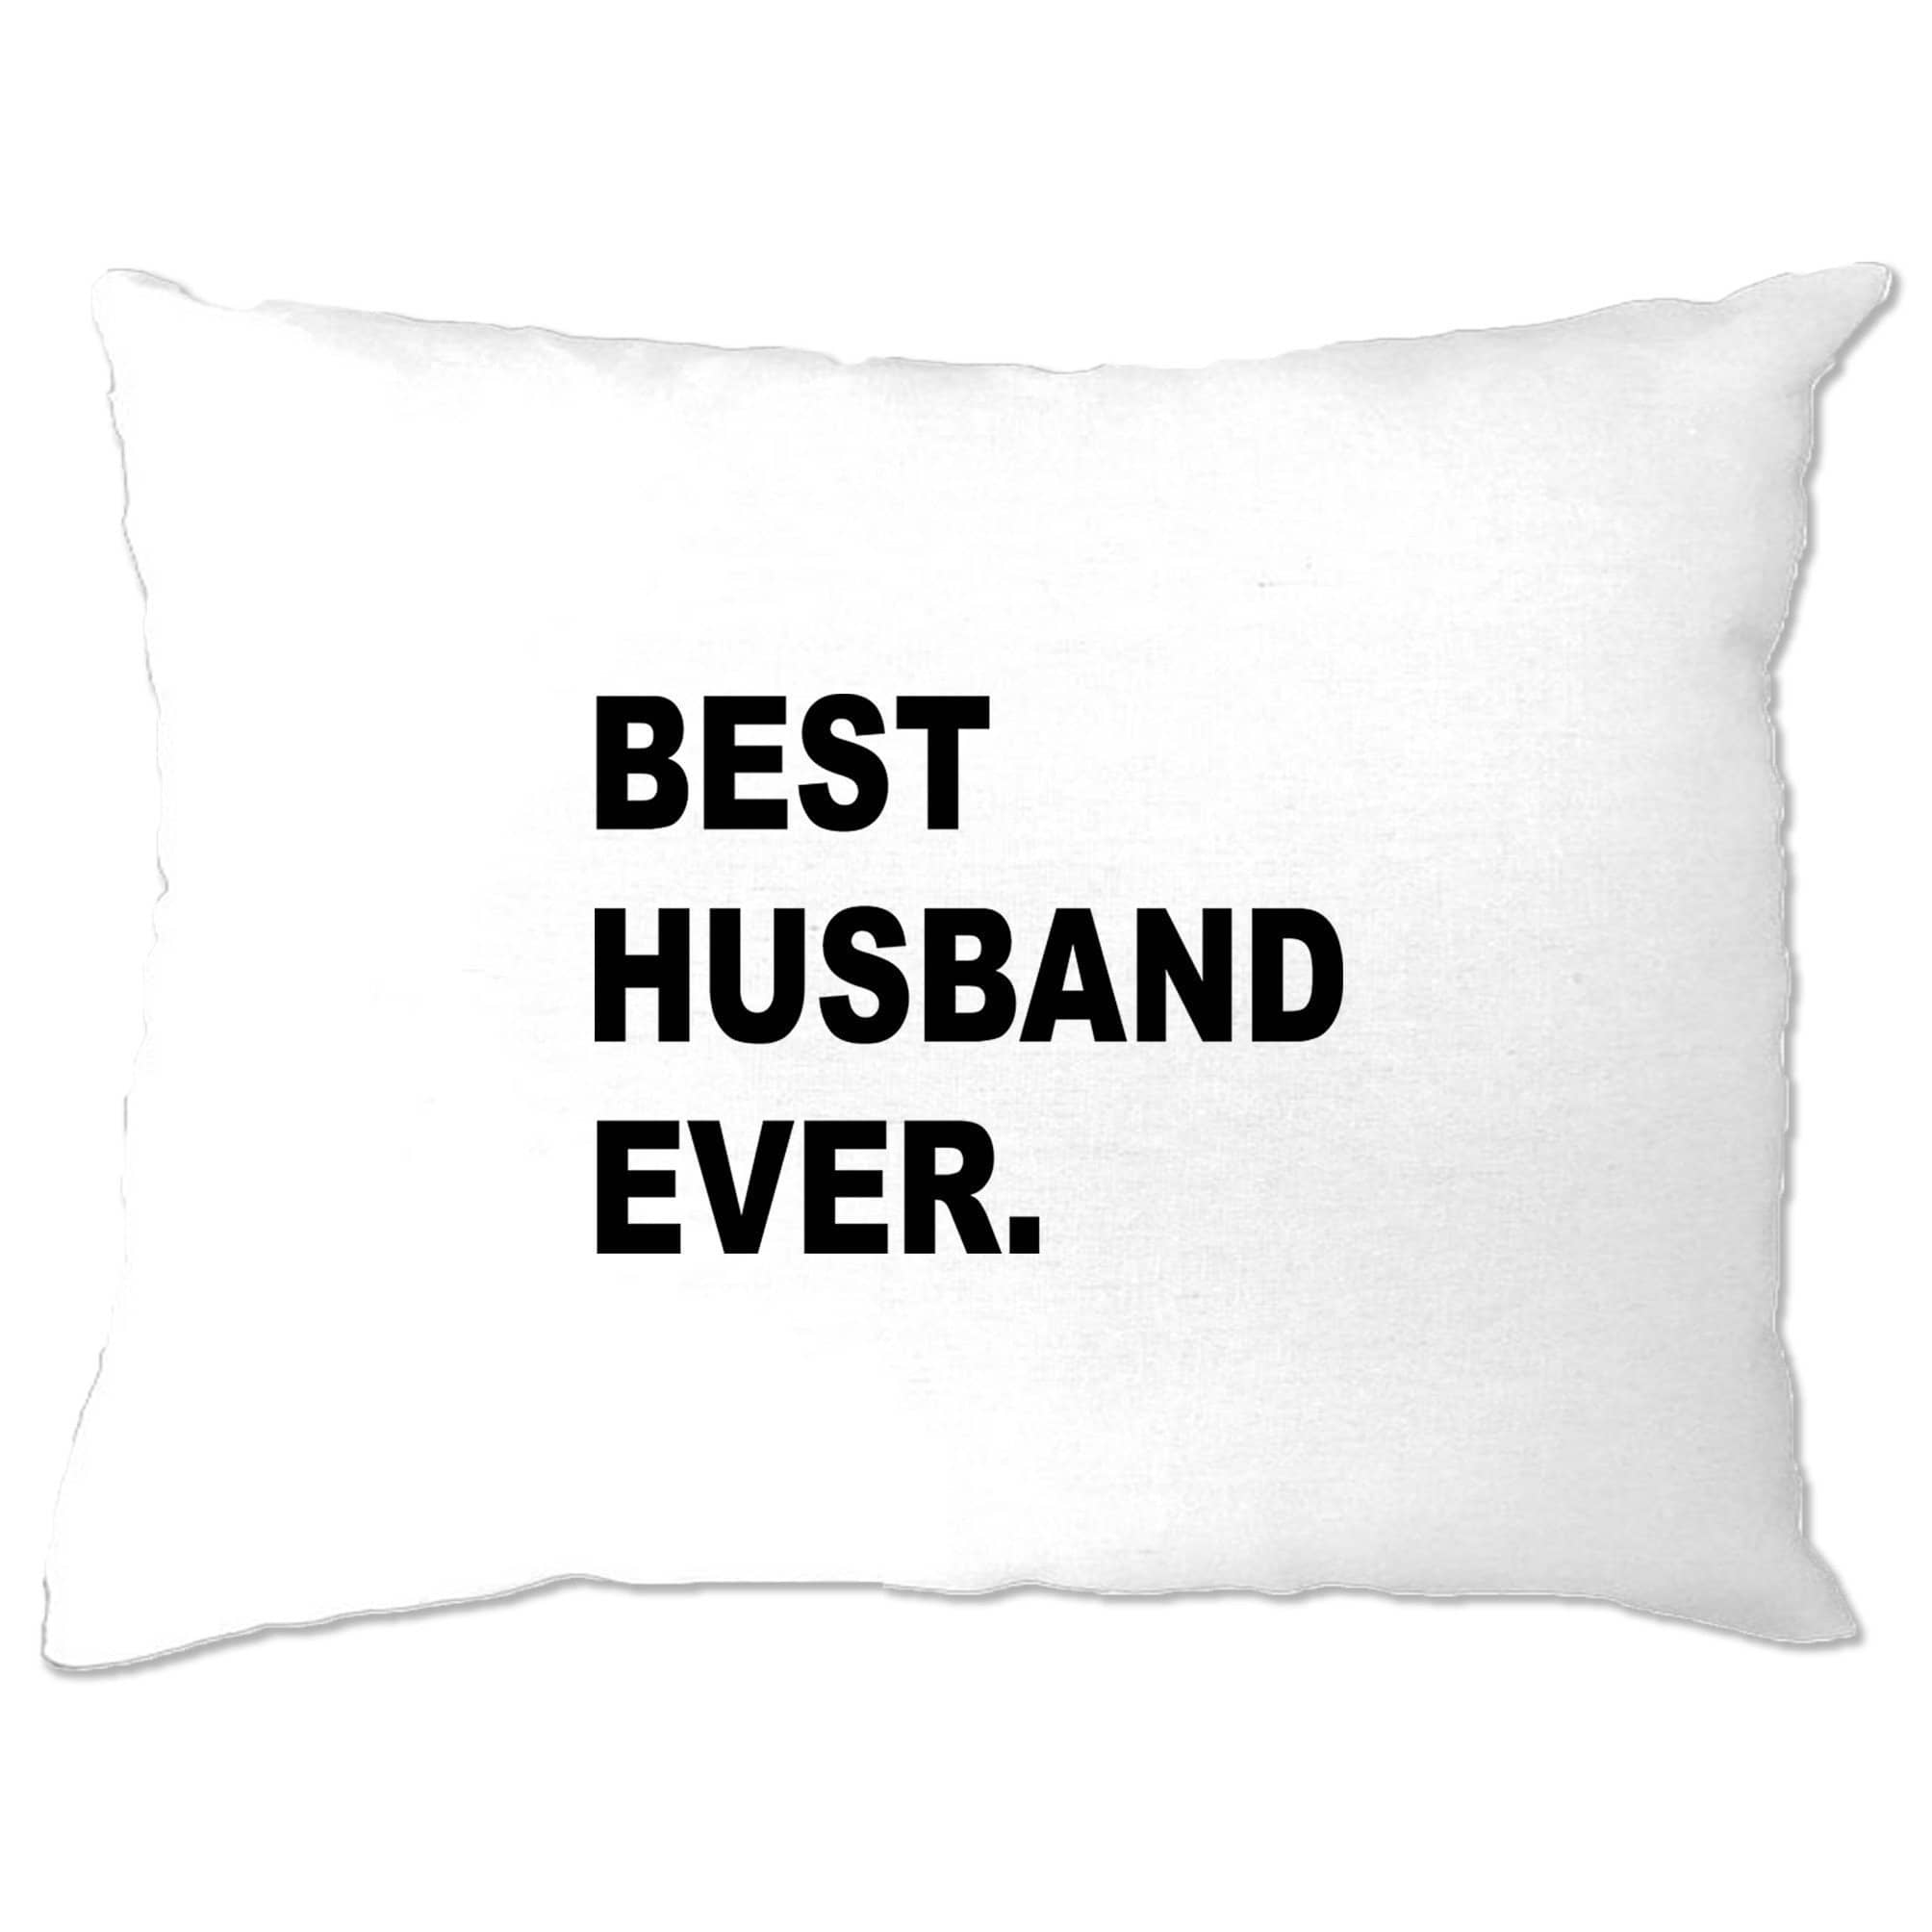 Best Husband Ever Pillow Case Marriage Family Slogan